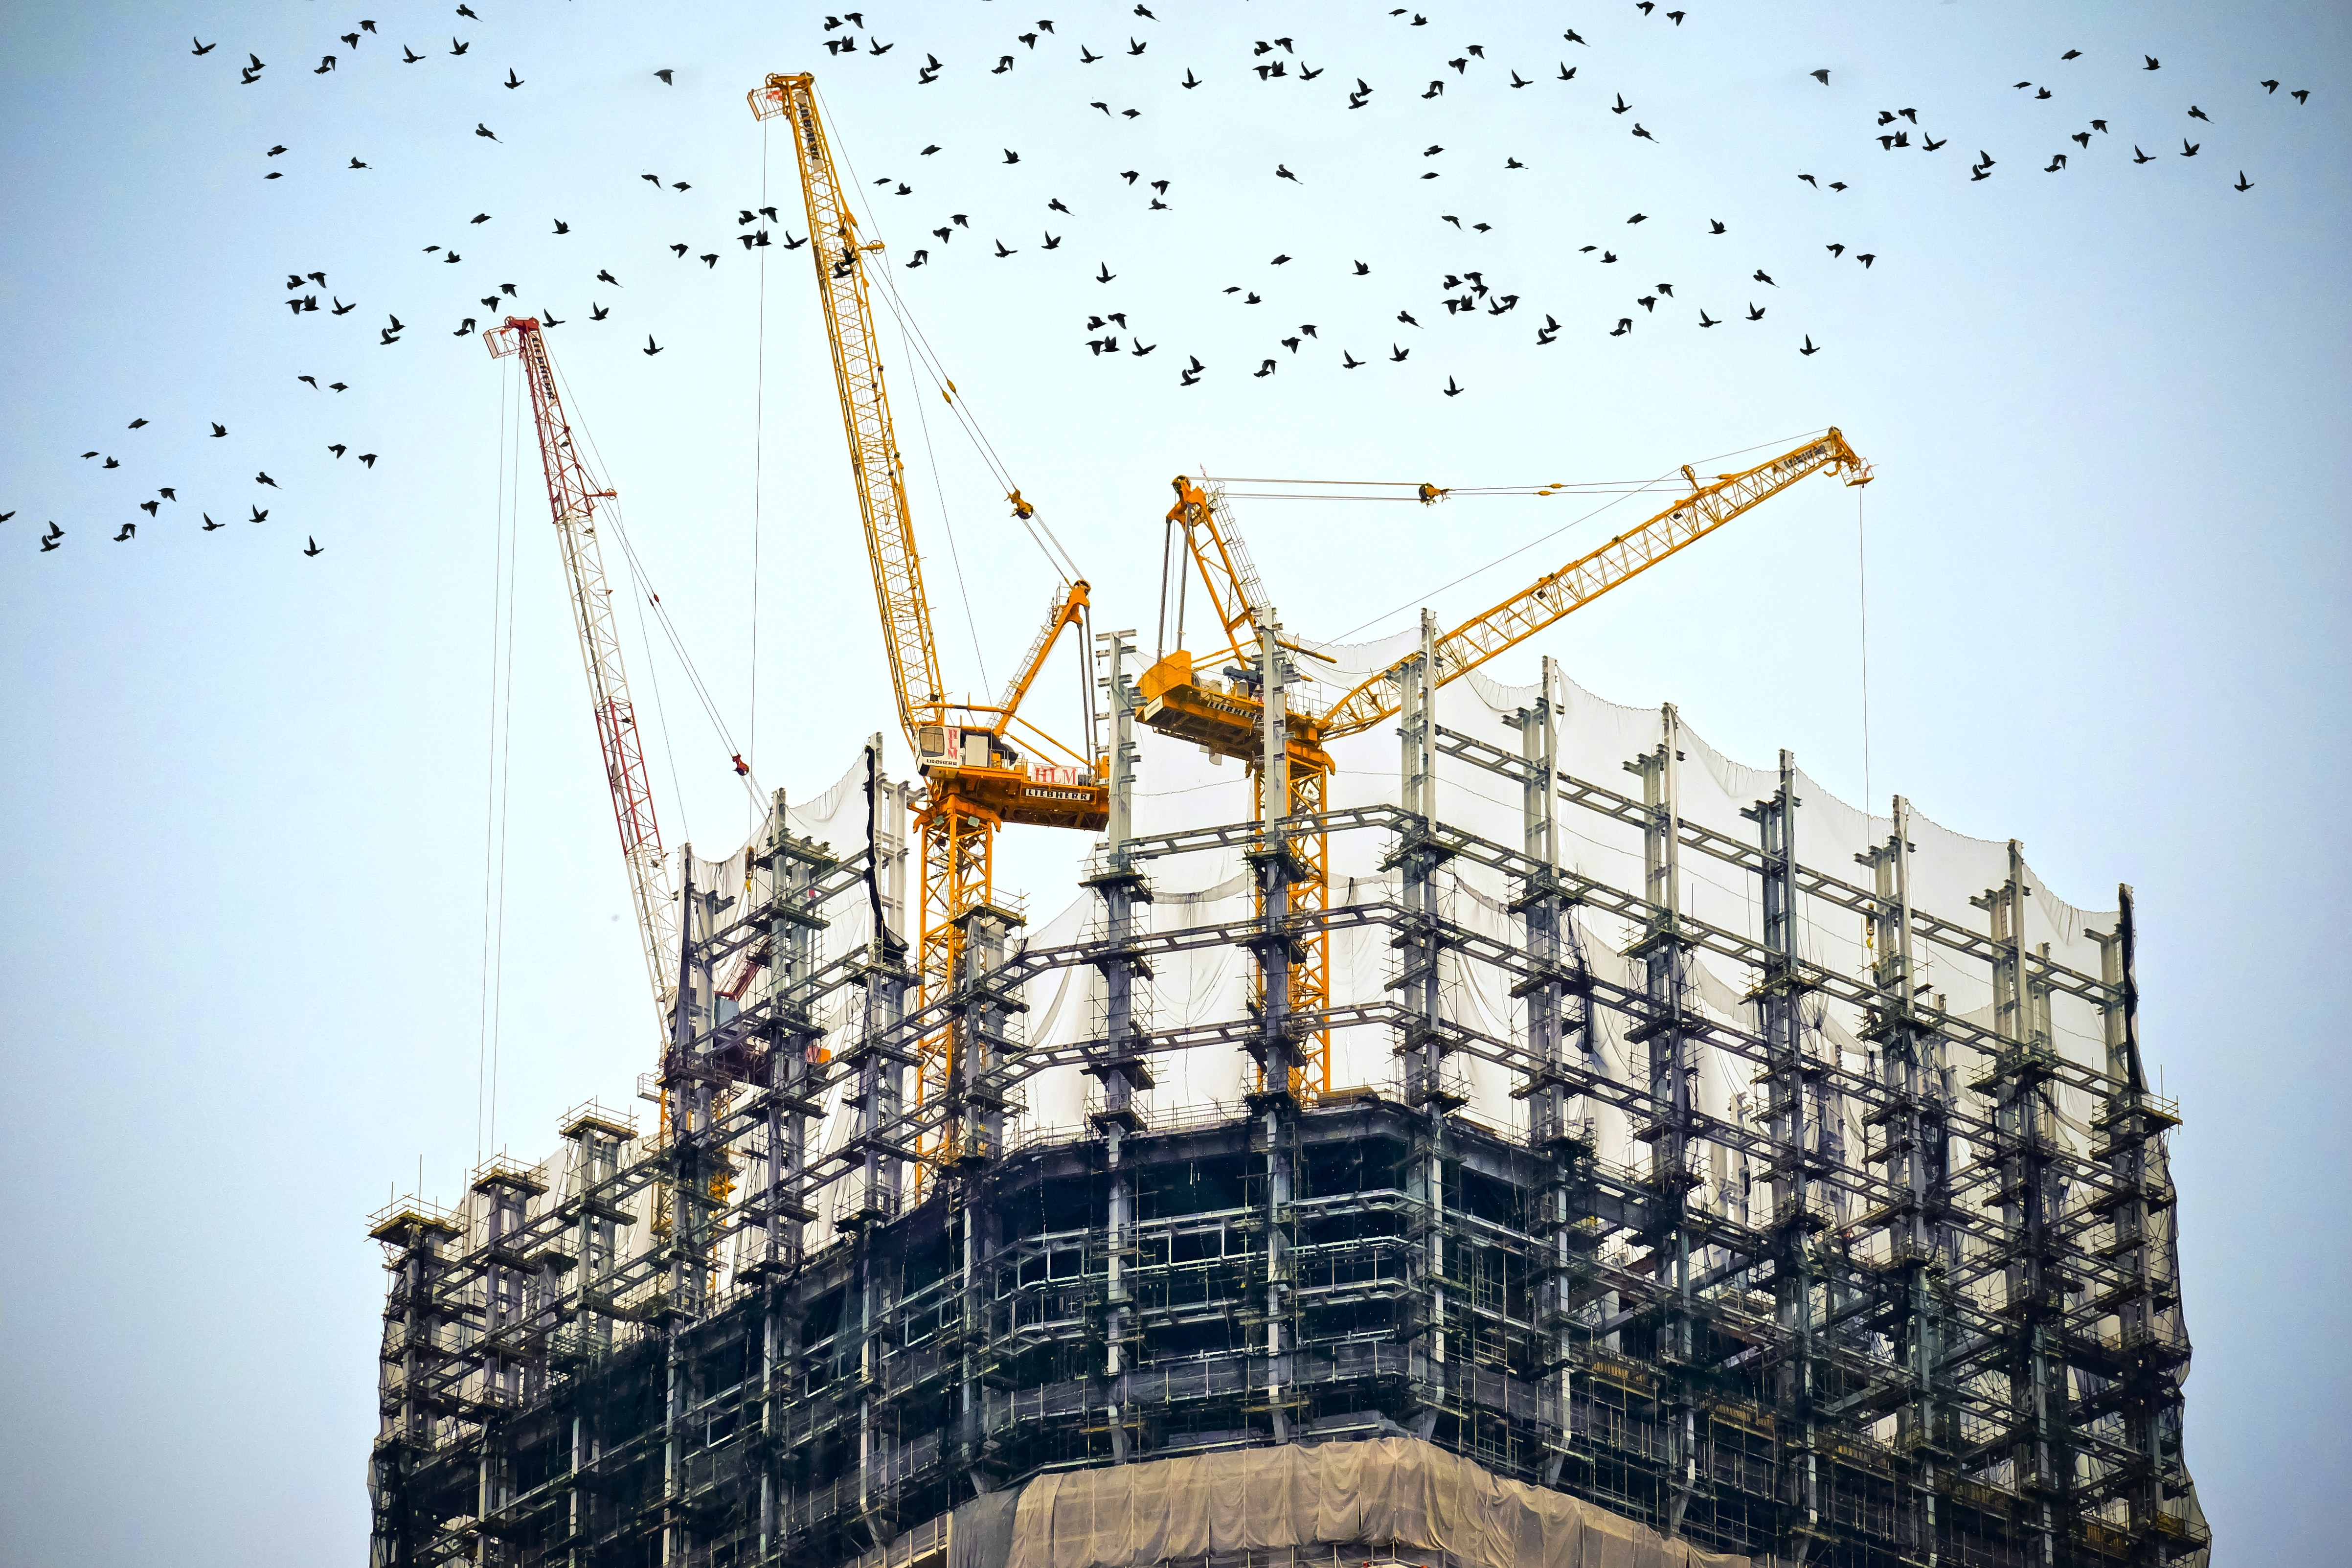 Birds flying around a half-built building and construction site